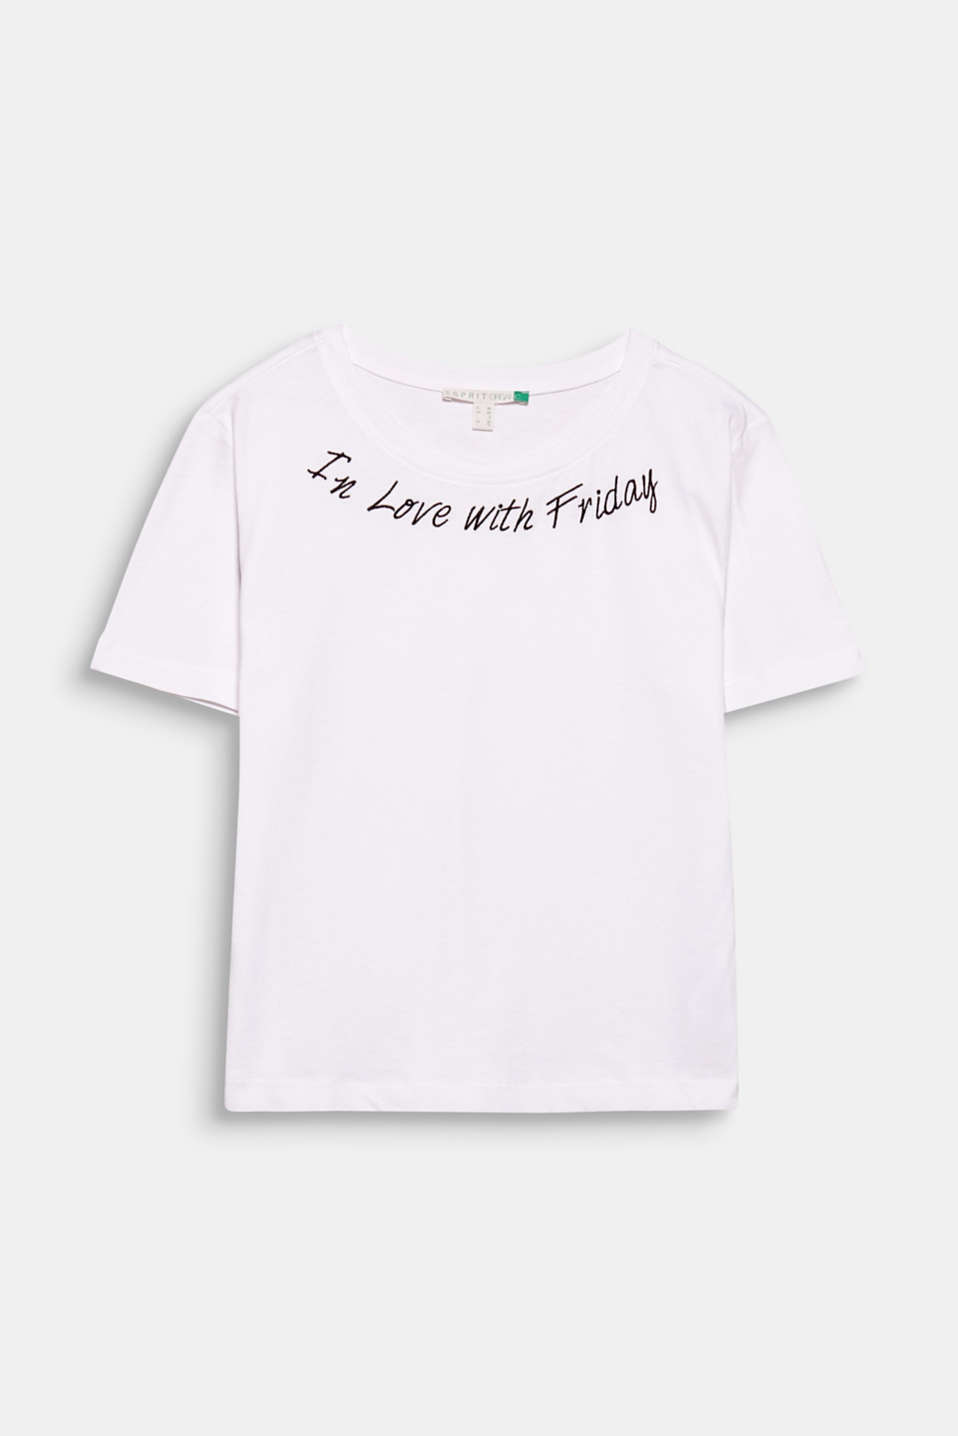 As long as you are in love!!! This T-shirt in high-quality organic cotton wows us with its appliquéd statement!